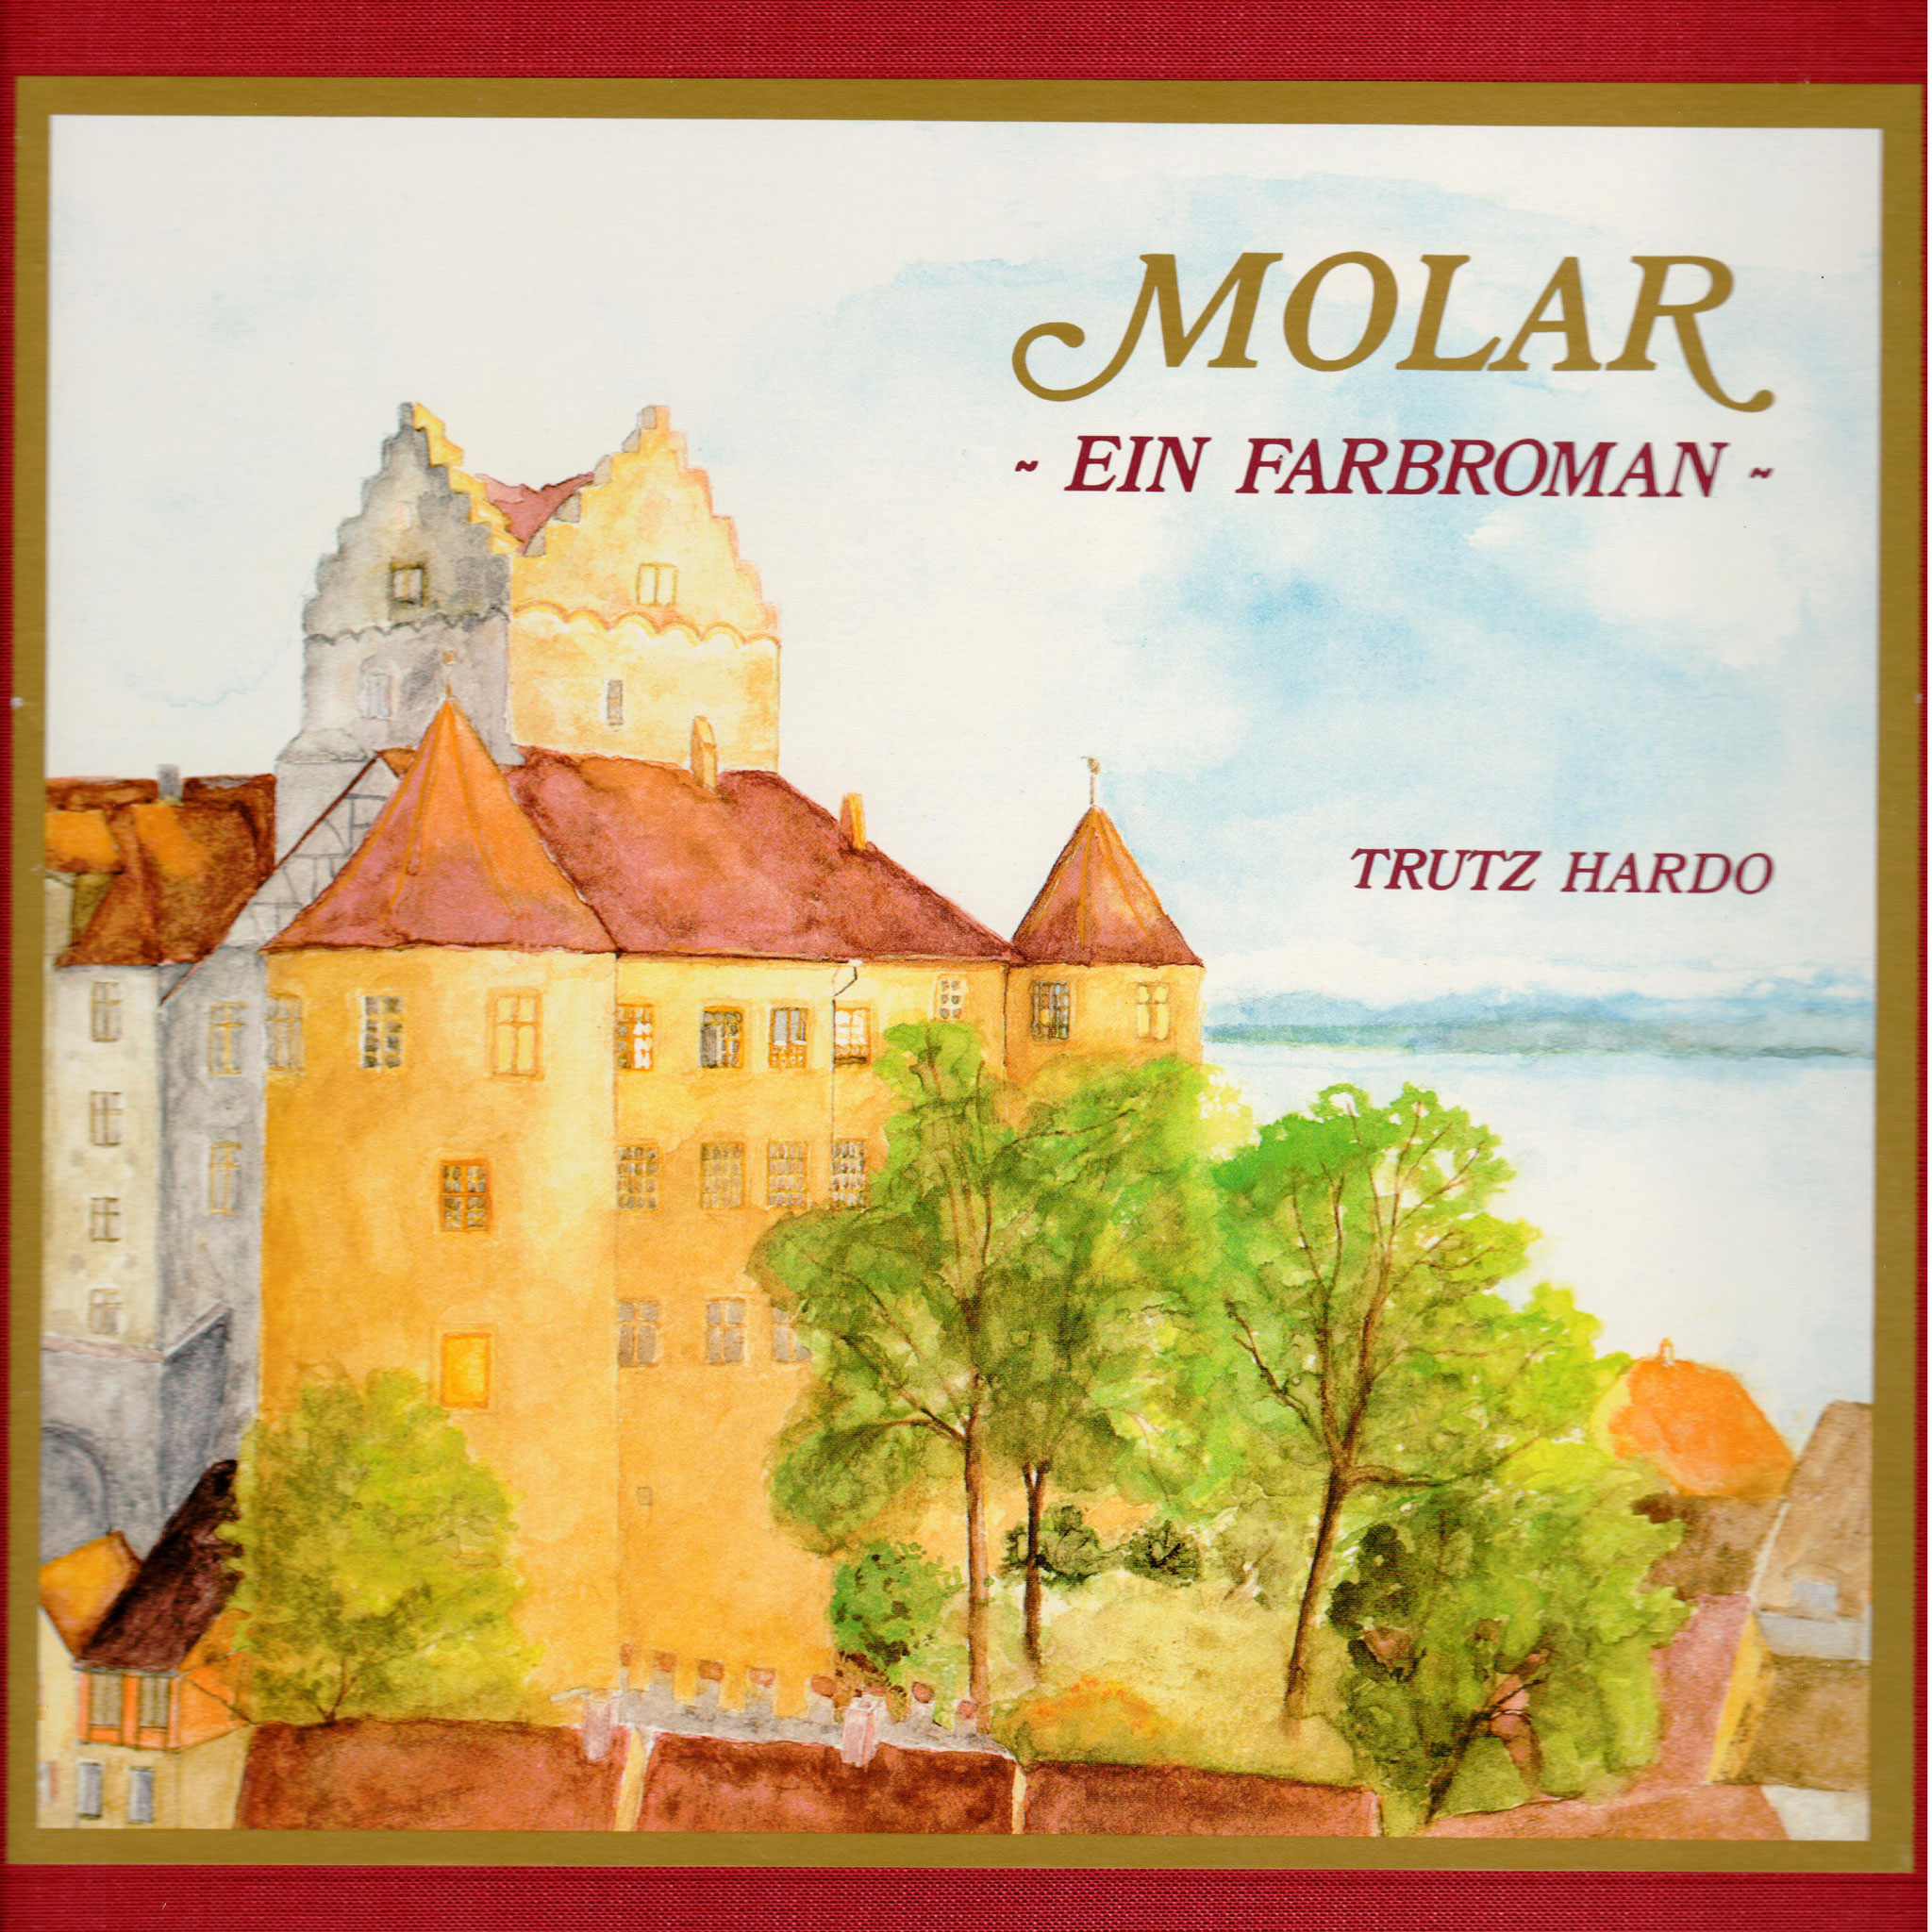 Trutz Hardo - Farbroman - Band 1 - Molar